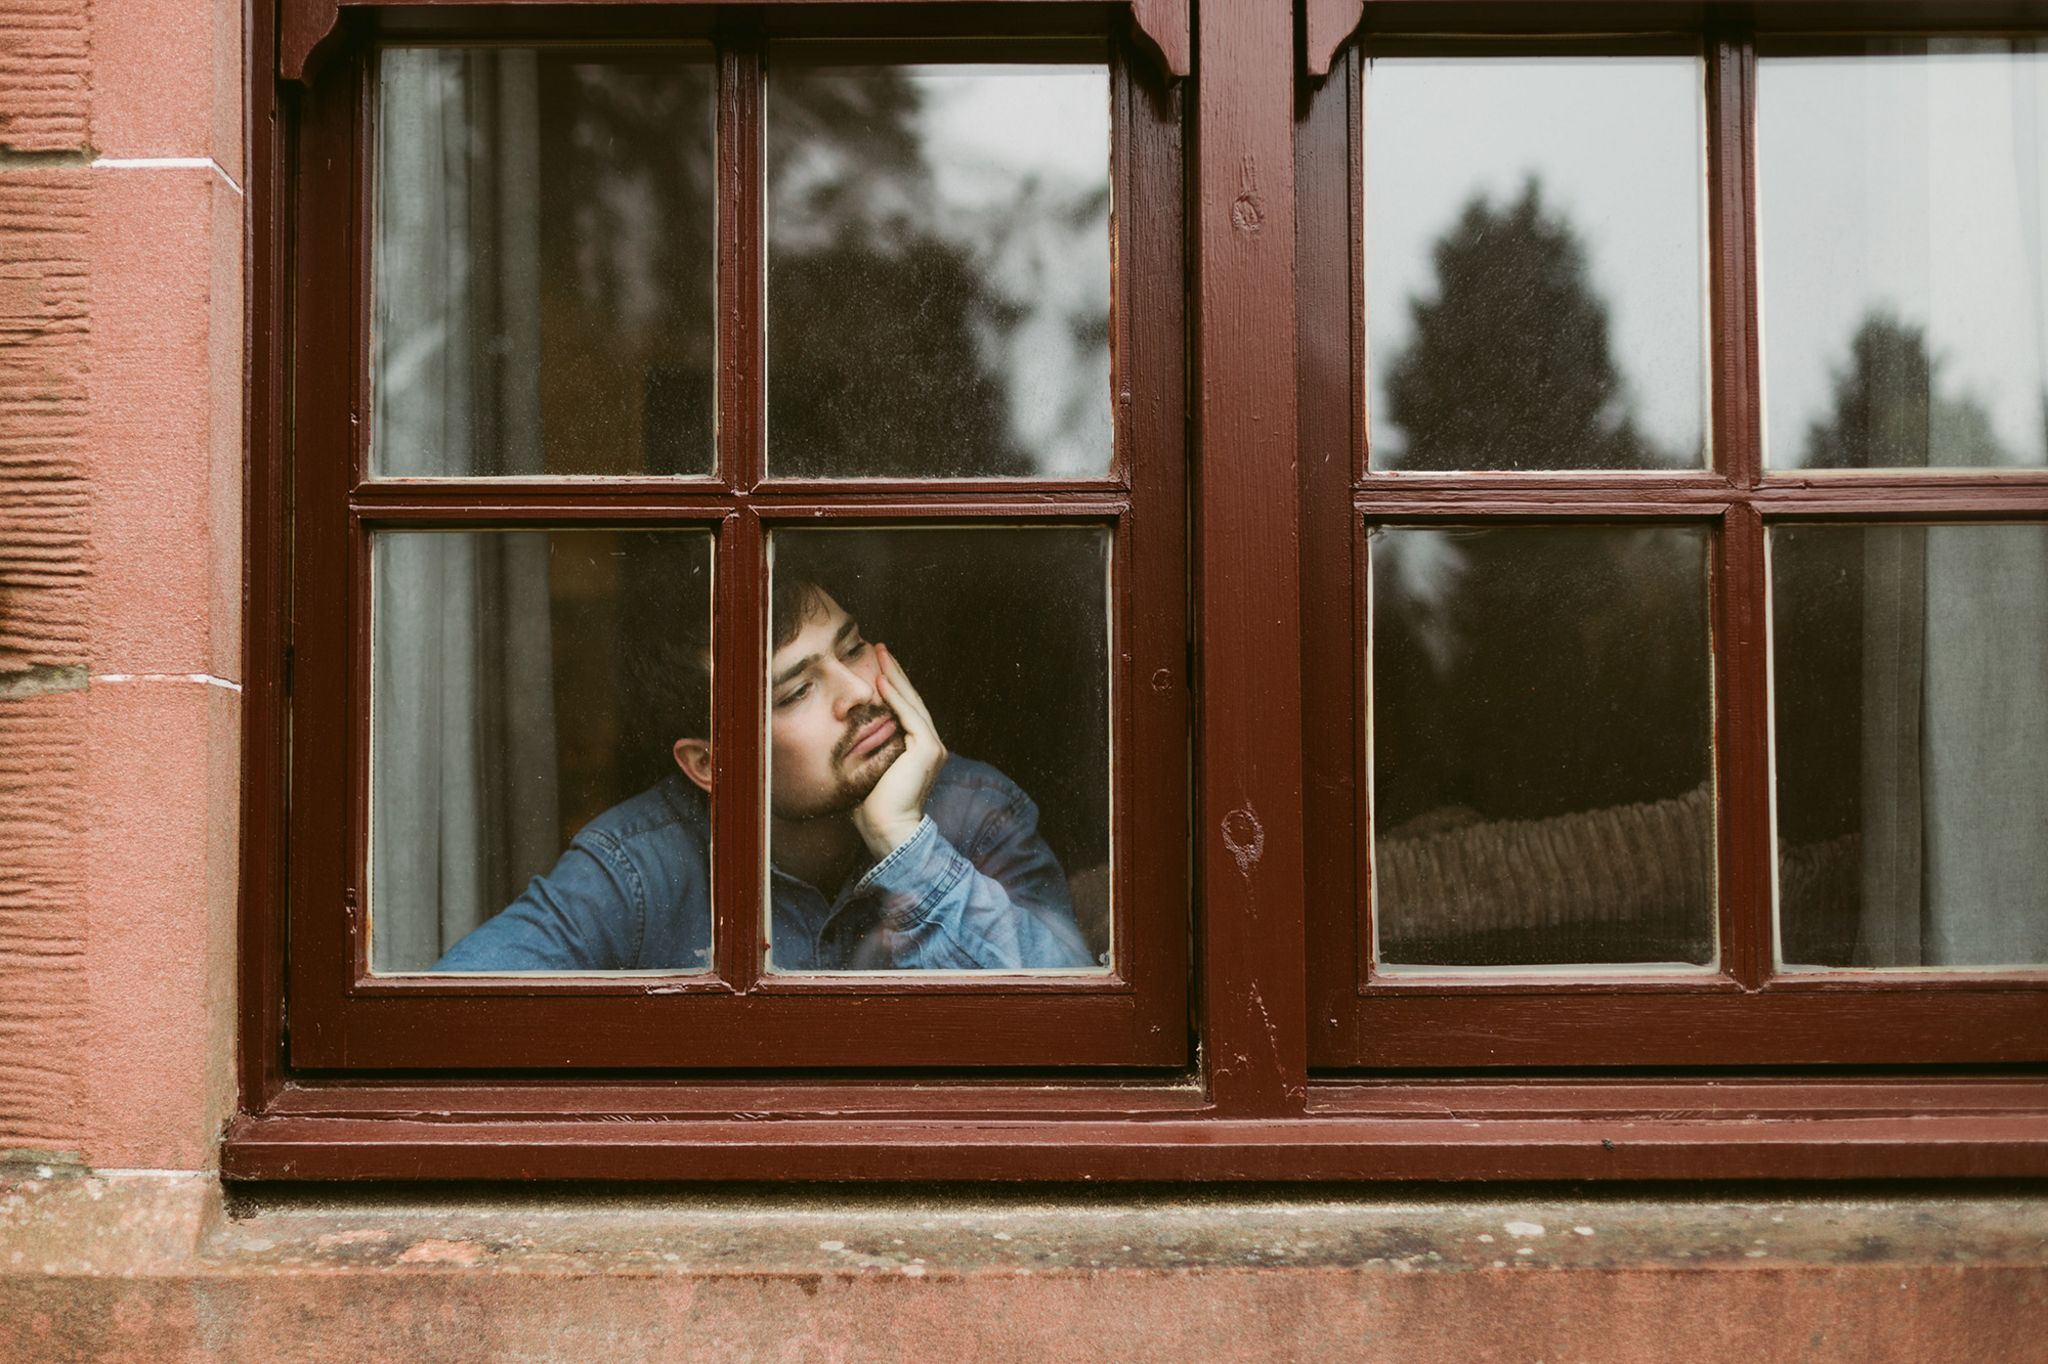 Bored man looking out of window